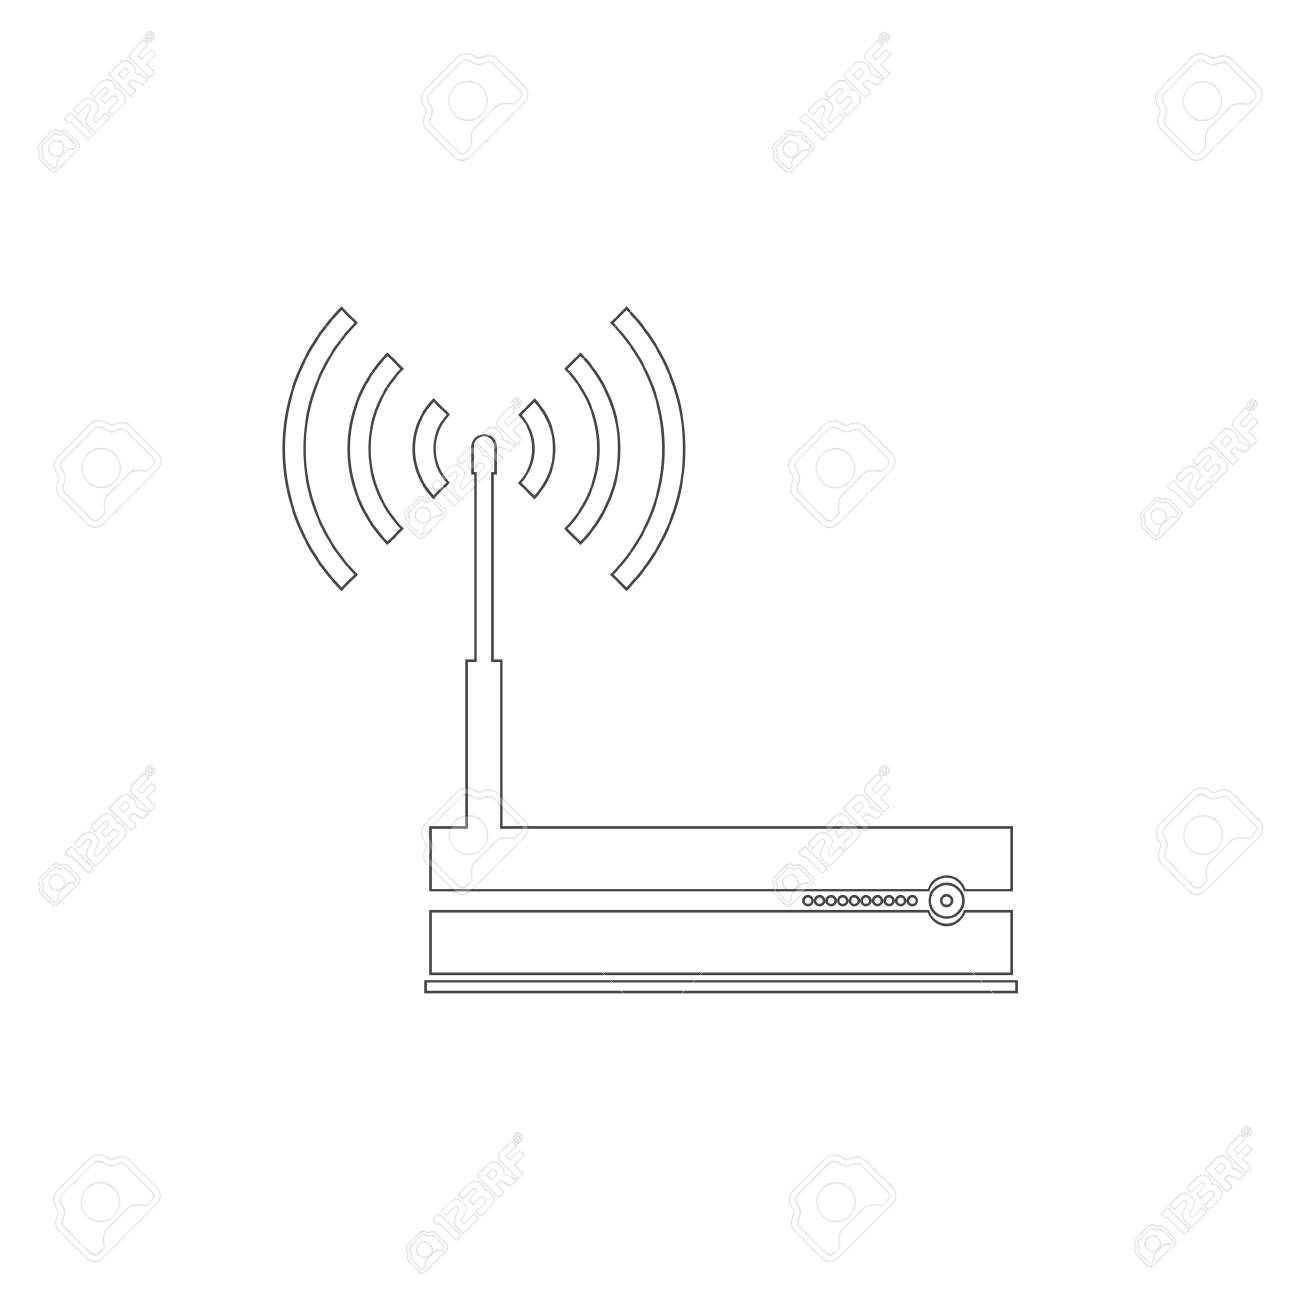 router icon, modem router stock vector - 111097319